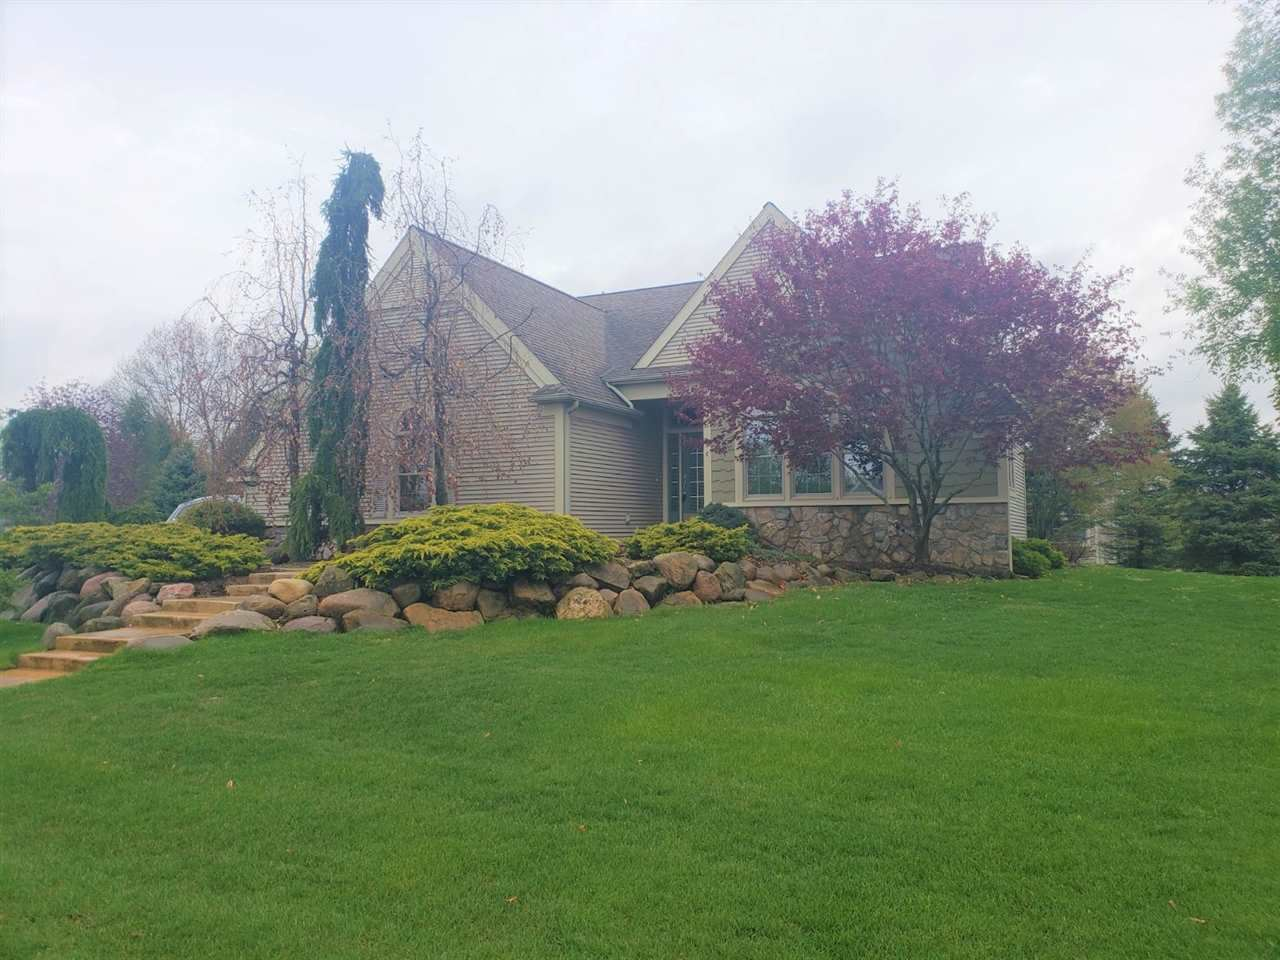 26 WILDFLOWER WAY, Jackson, MI 49203- - #: 40053754